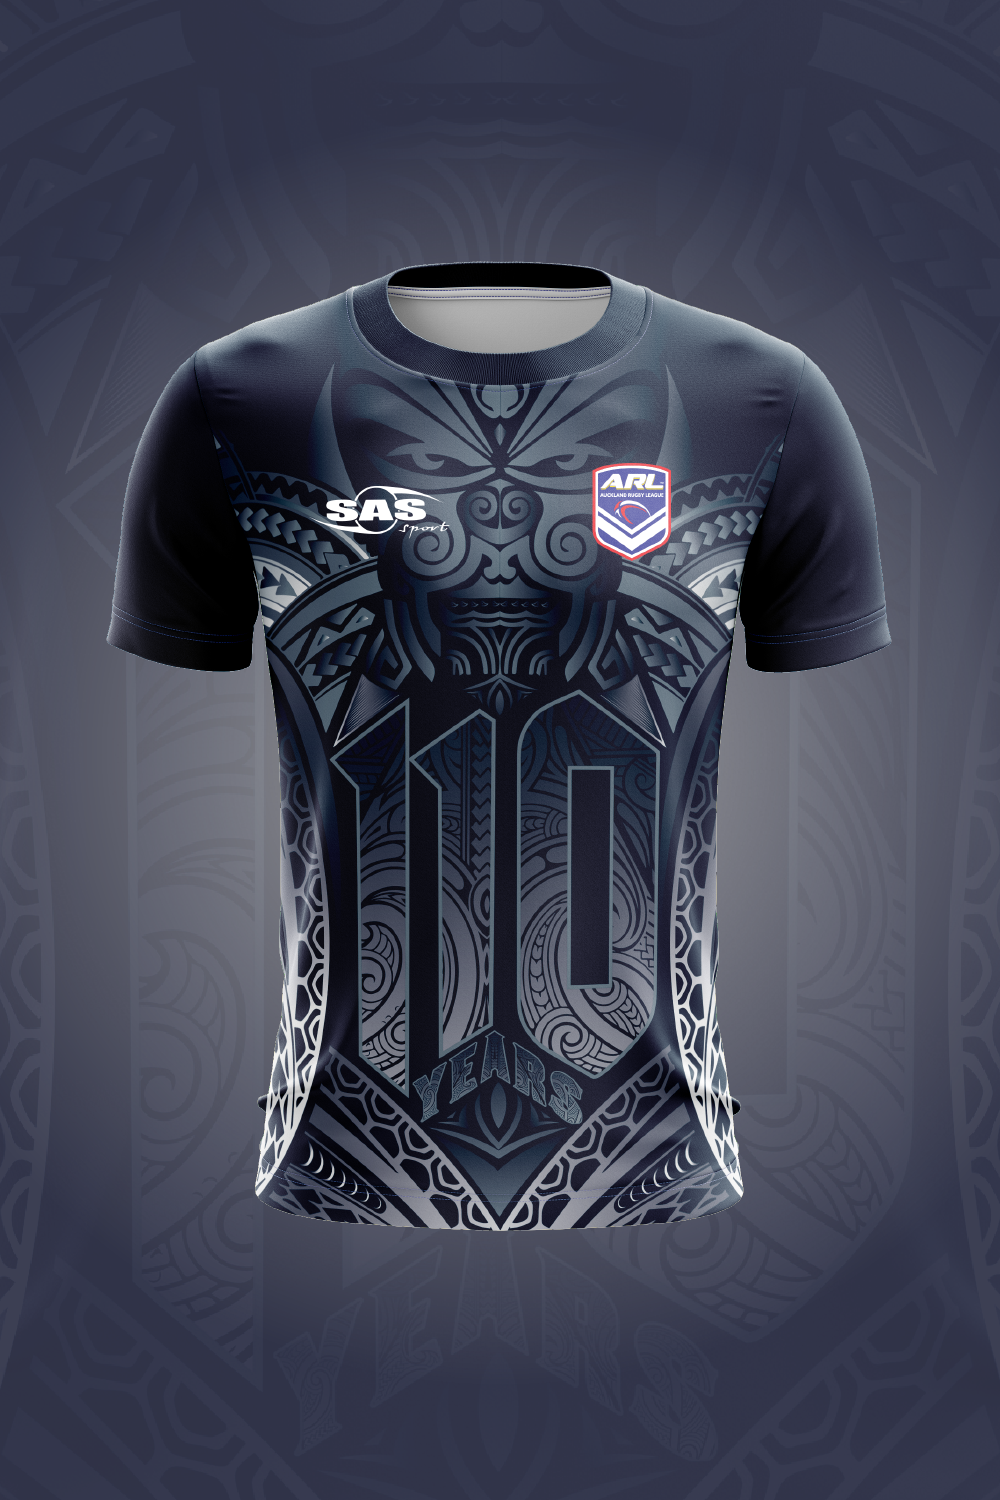 Rugby Jersey Design By Sas Creative Rugby Jersey Design Rugby Design Jersey Design